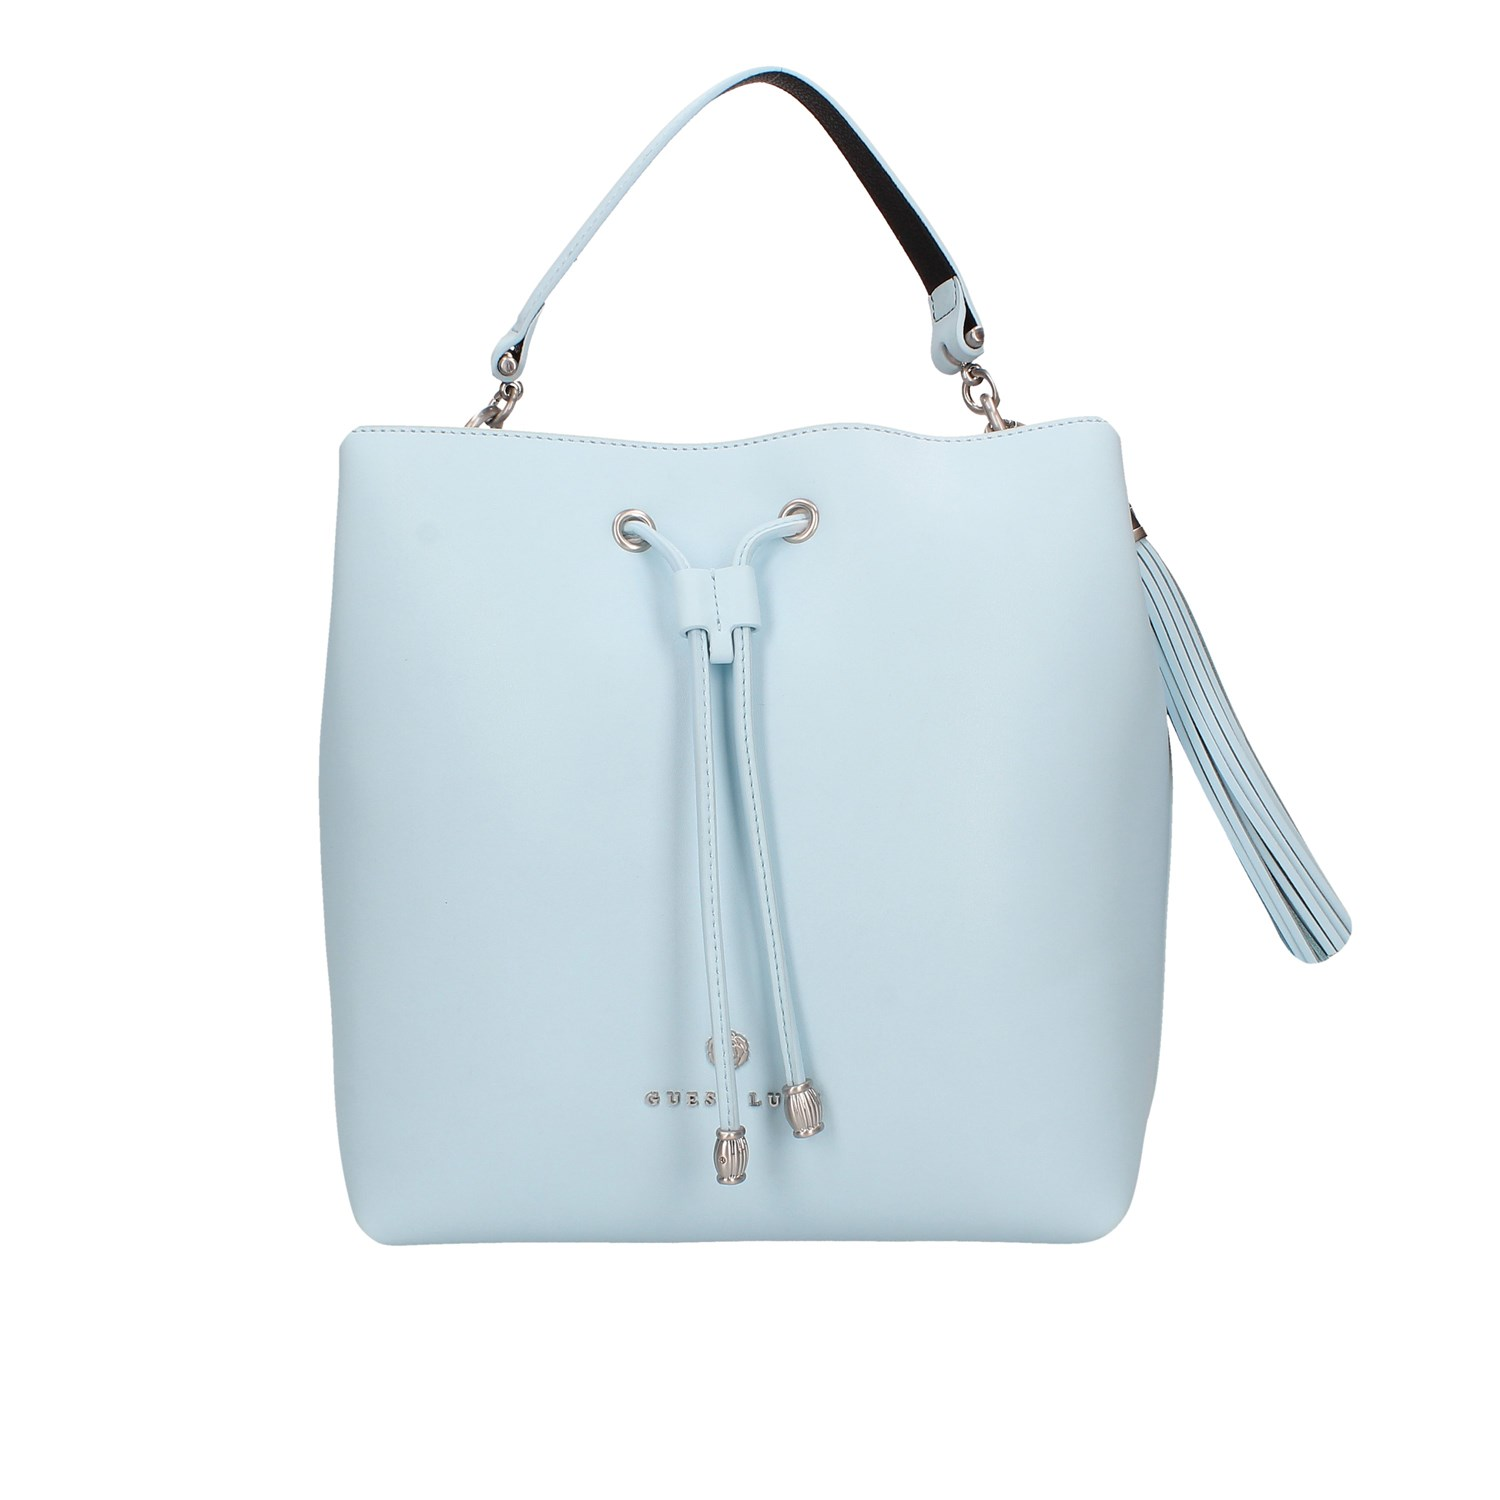 Tote bag Guess Luxe Woman Light blue Buy Tote bag On